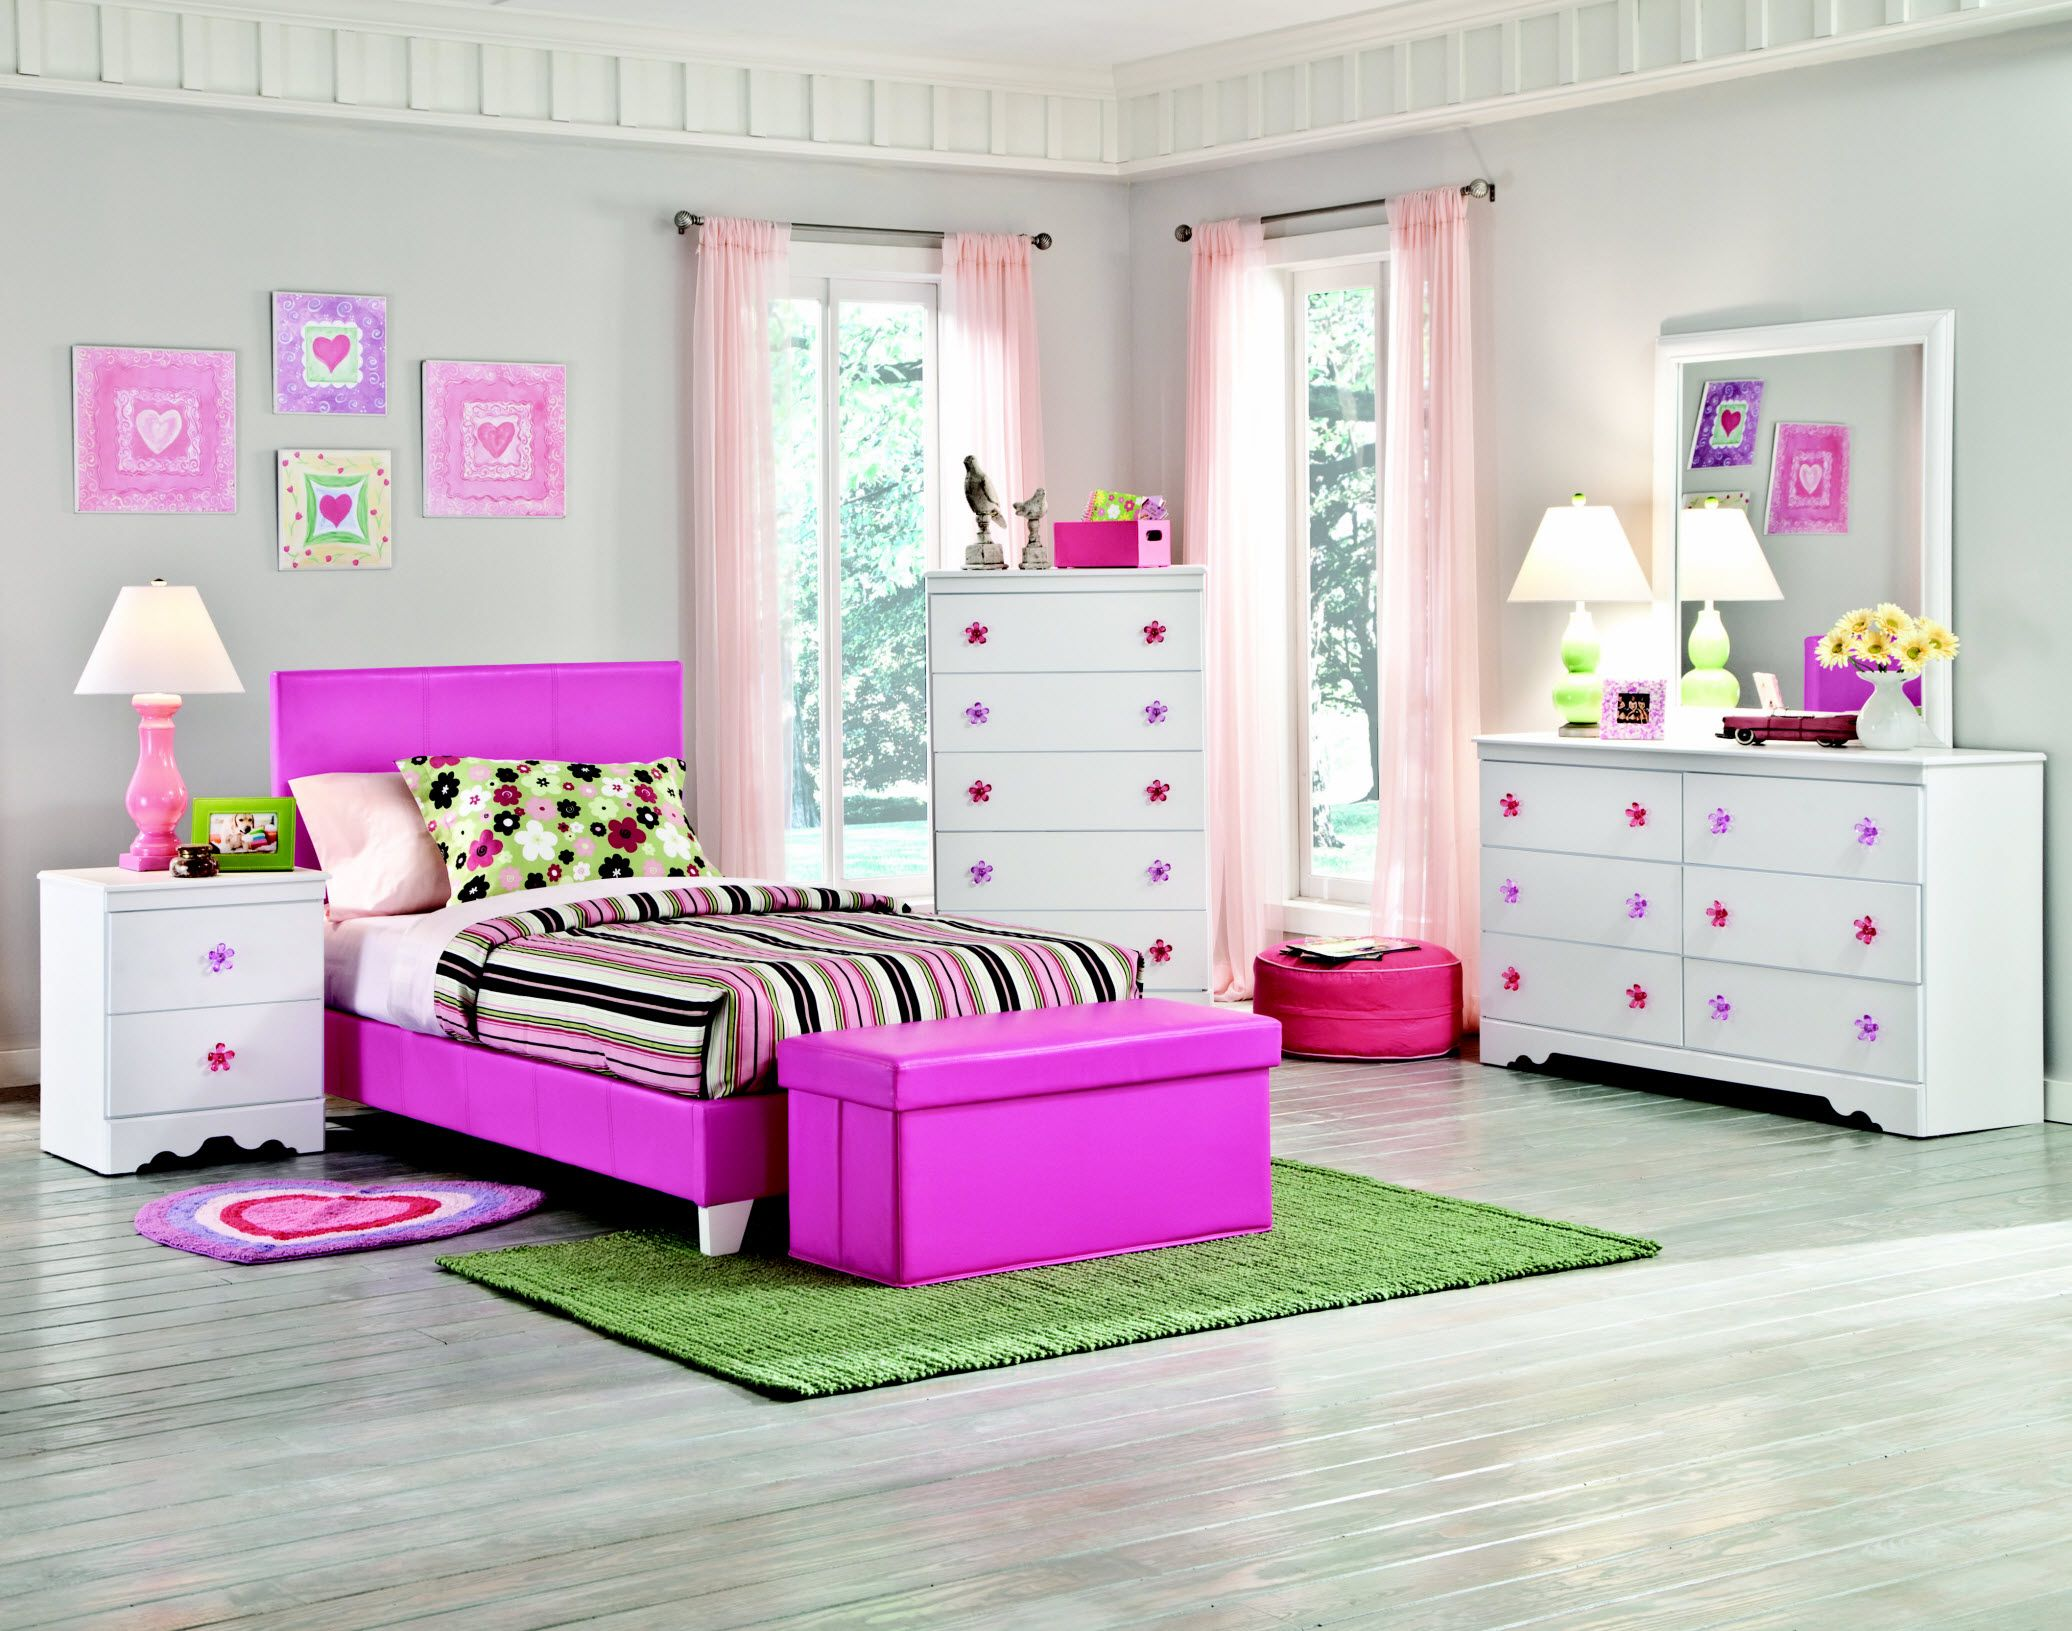 Design Ideas For Modern Gray Girls Bedroom With Cute